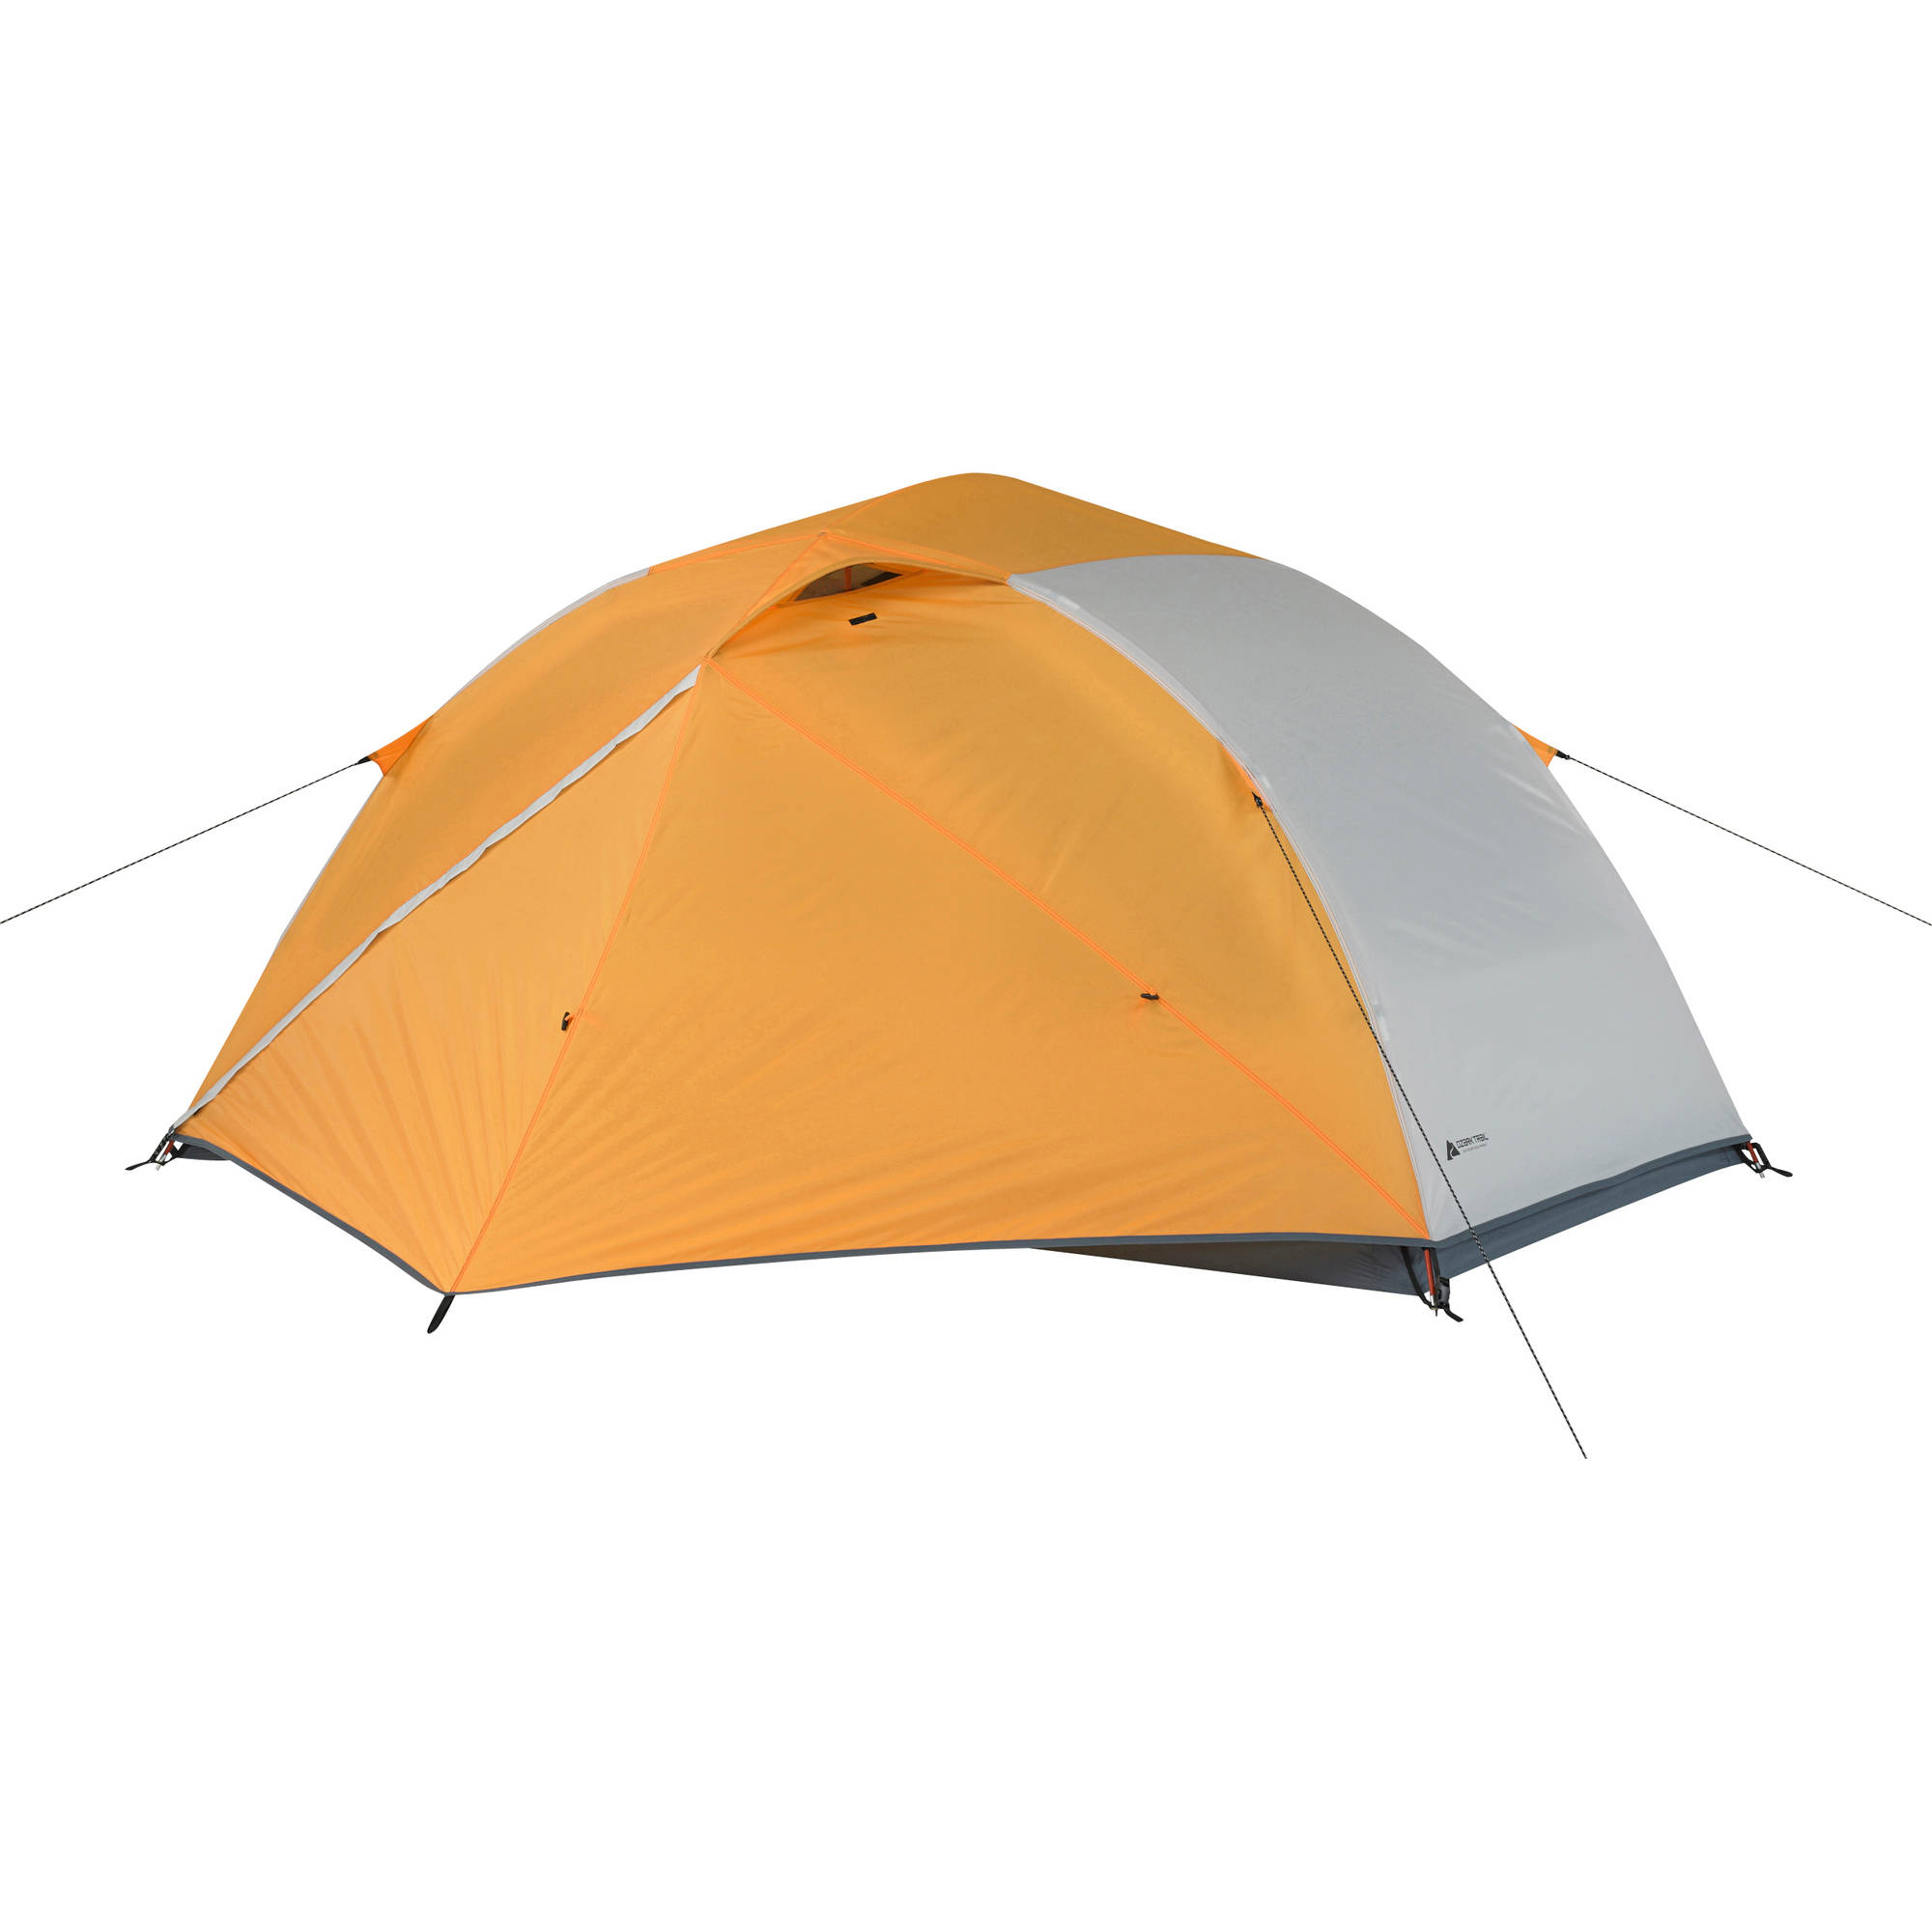 Ozark Trail 4-Season 2-Person Hiker Tent  sc 1 st  Walmart.com & Ozark Trail 4-Season 2-Person Hiker Tent - Walmart.com